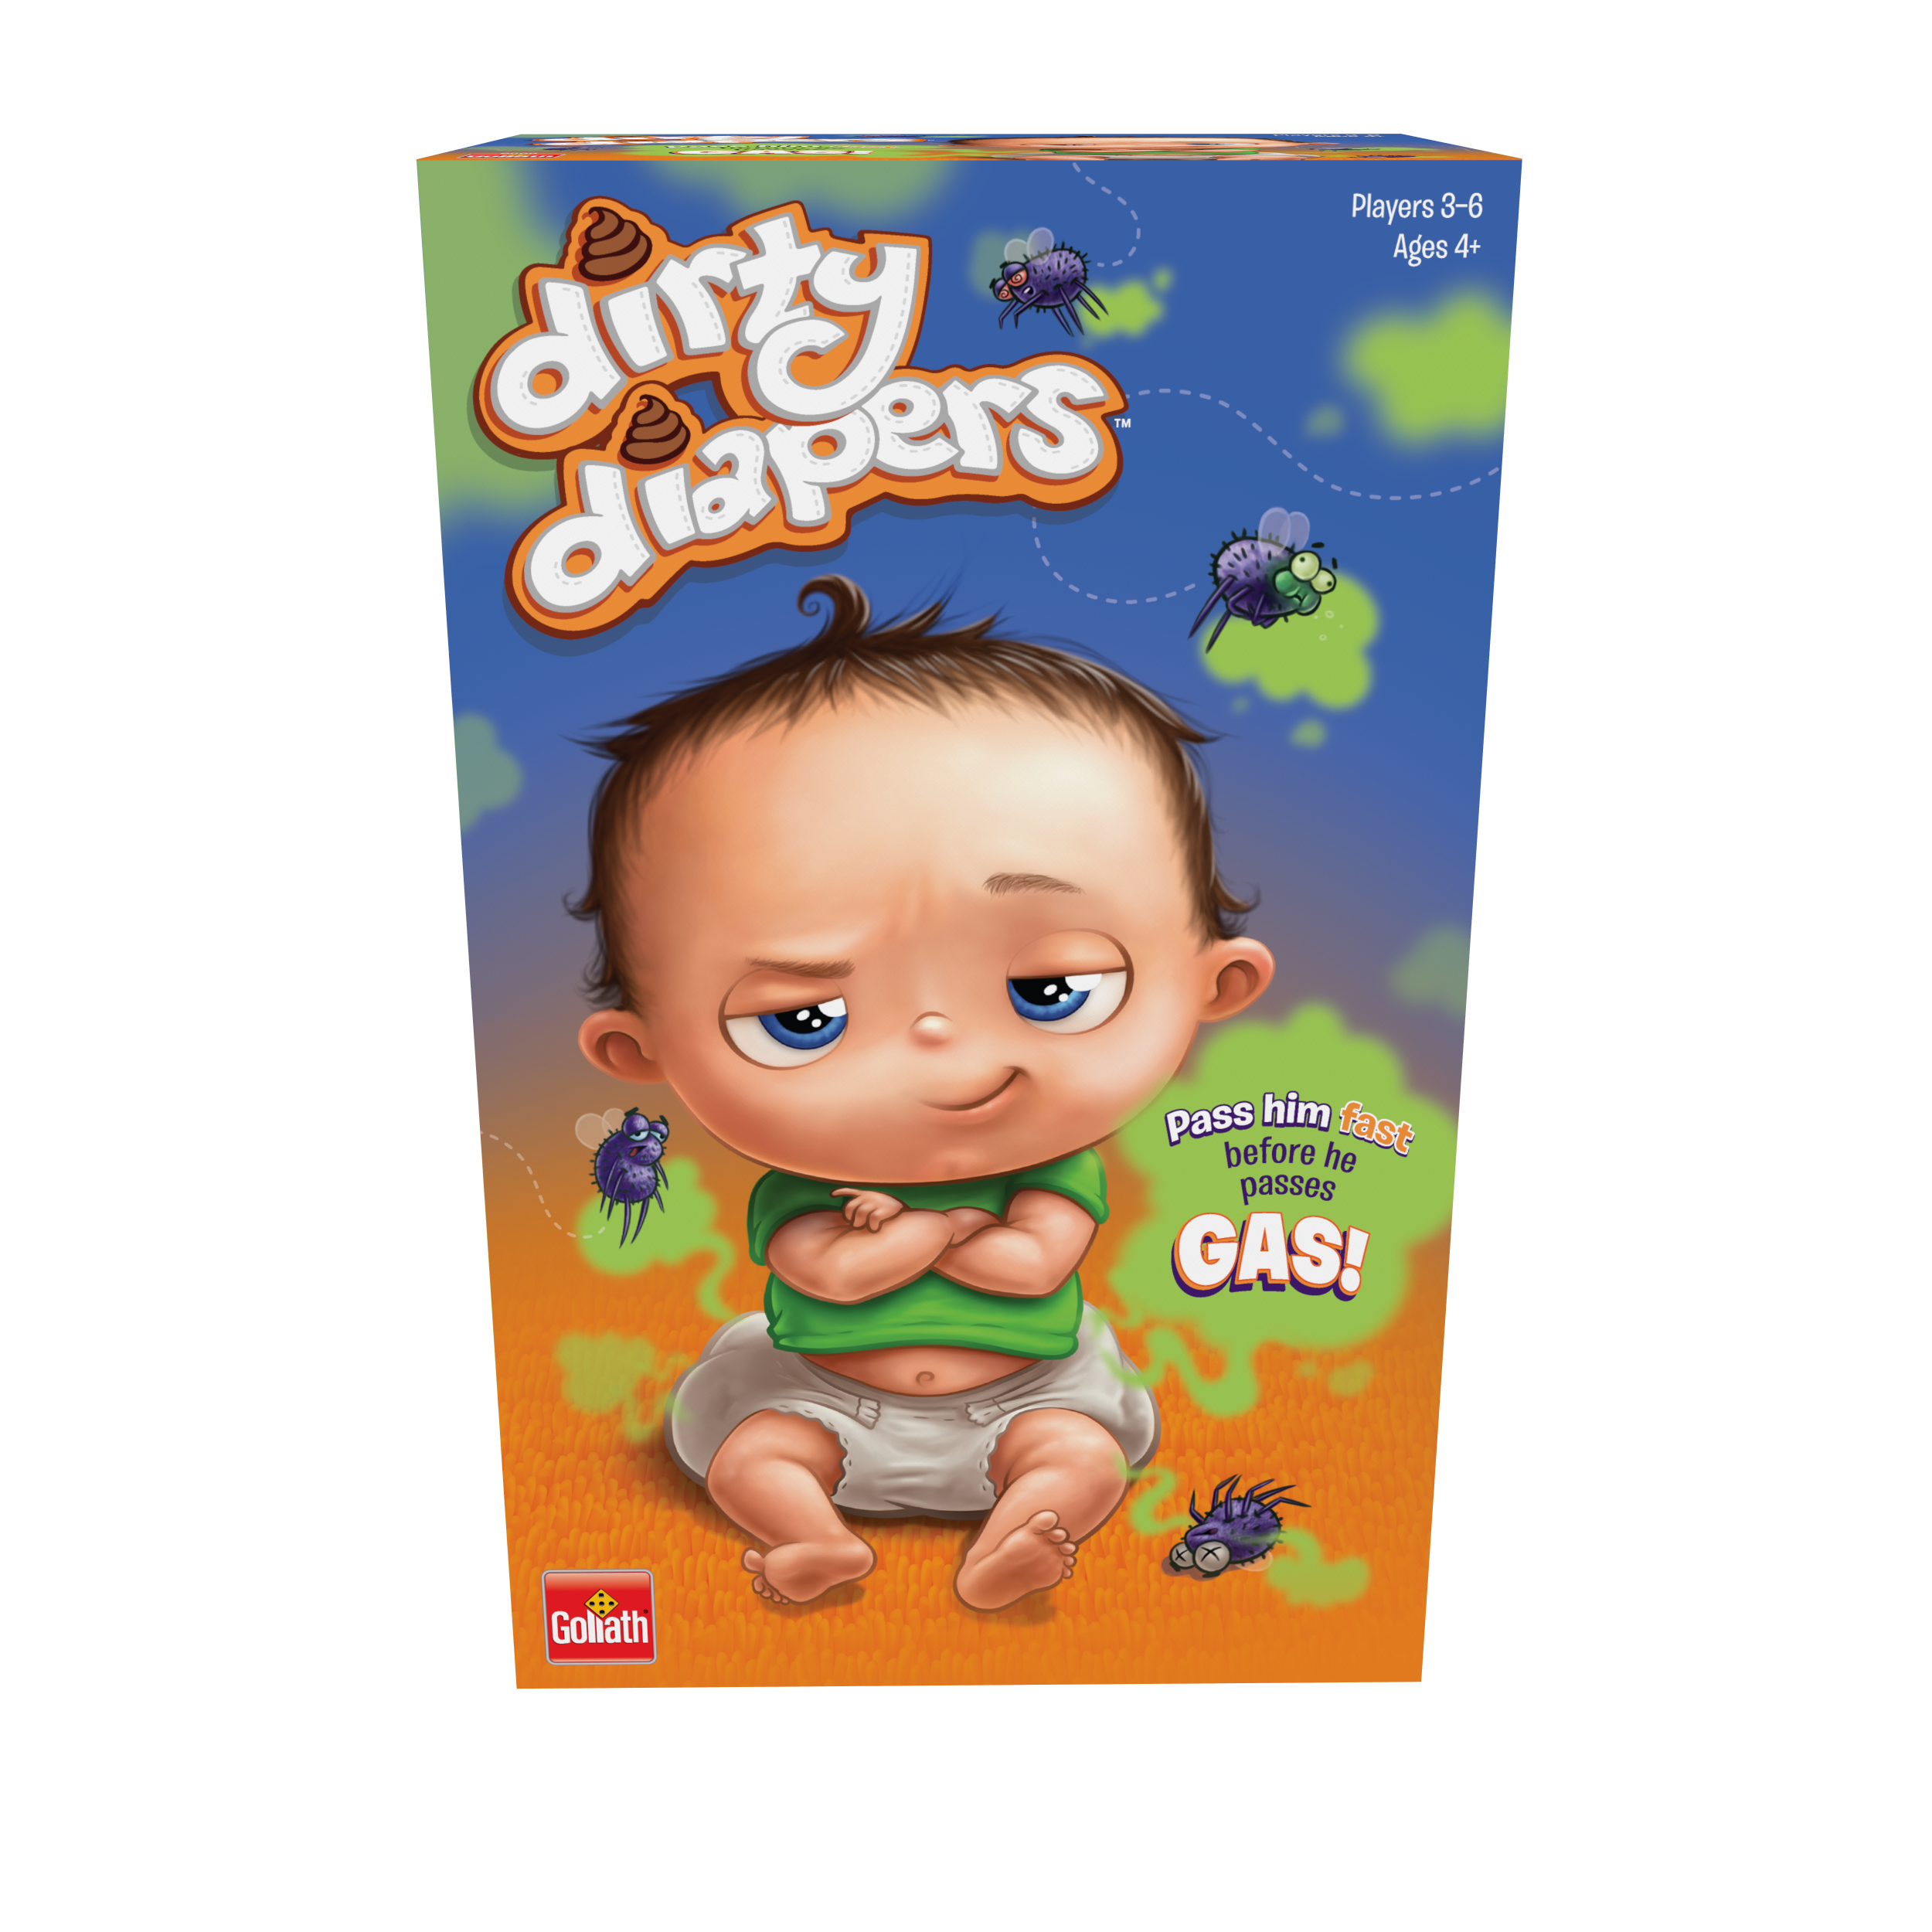 8565_DirtyDiapers_front.png